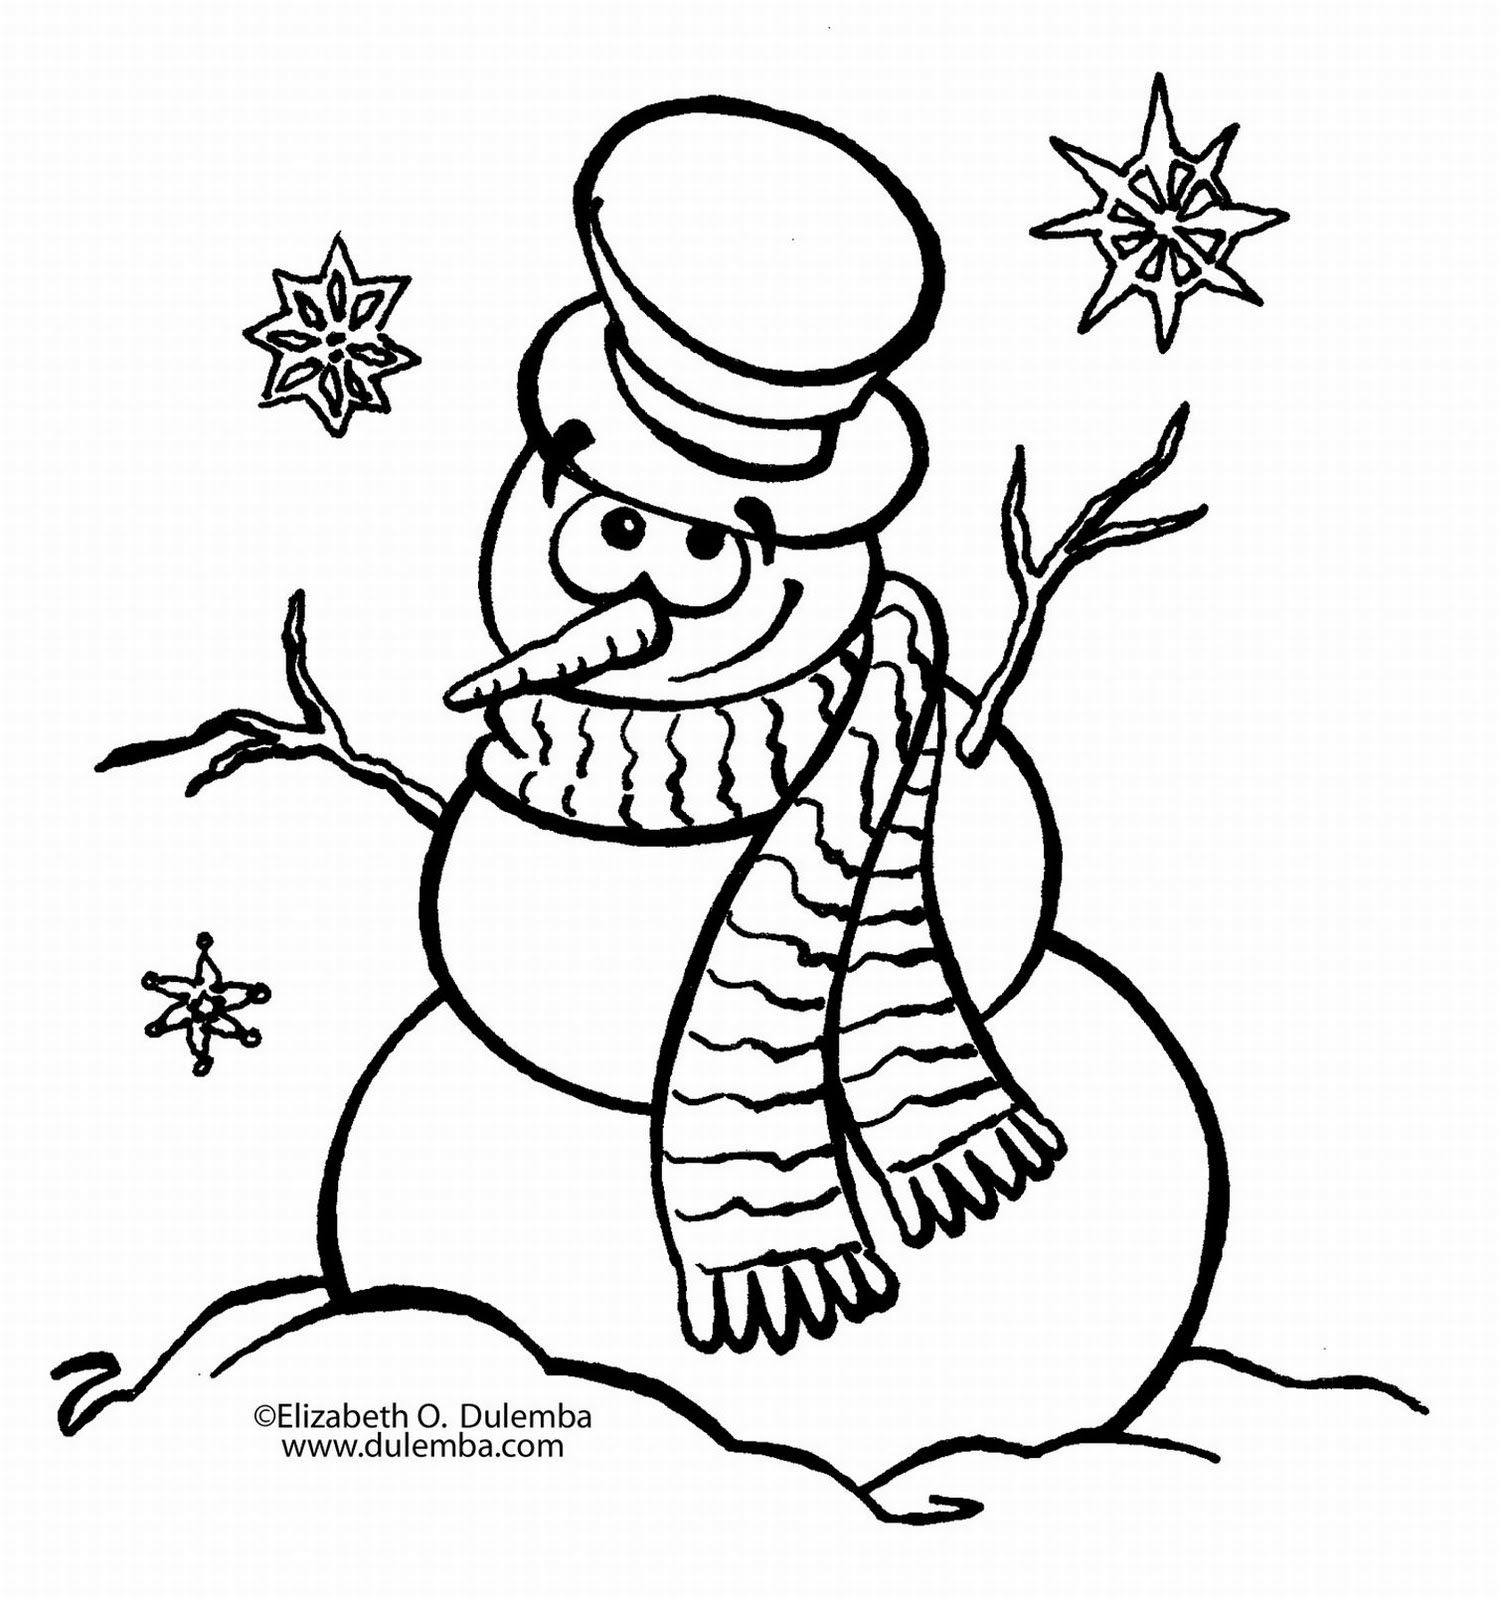 Coloring Page Book Com Snowman Coloring Pages Christmas Coloring Books Coloring Pages